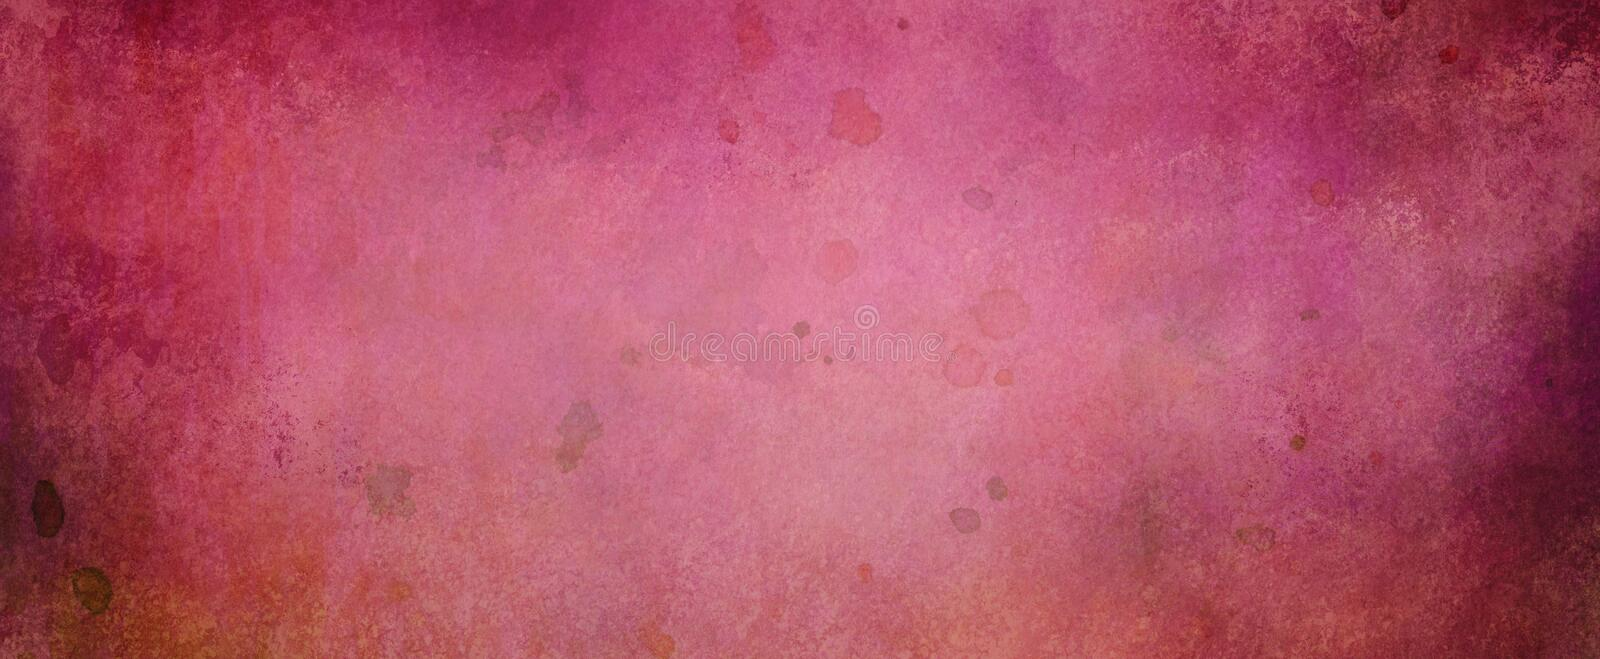 Painted texture background with watercolor paint drips and spatter and dark grunge border in shades of pink purple and red stock photos